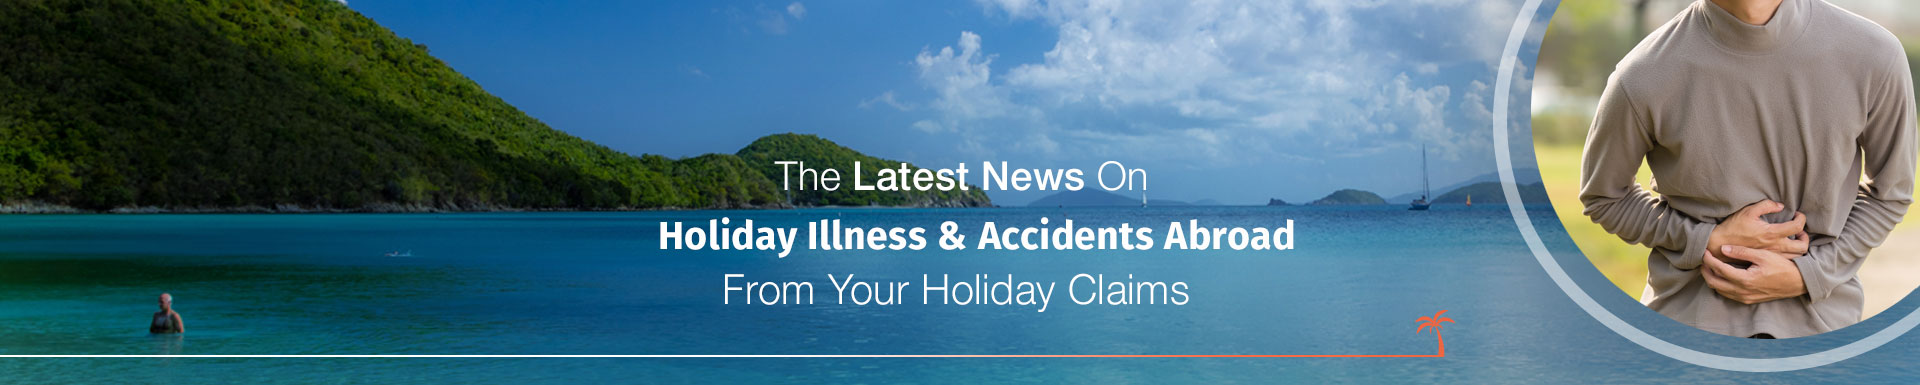 Illness outbreaks ongoing at Dominican resort RIU Palace Bavaro